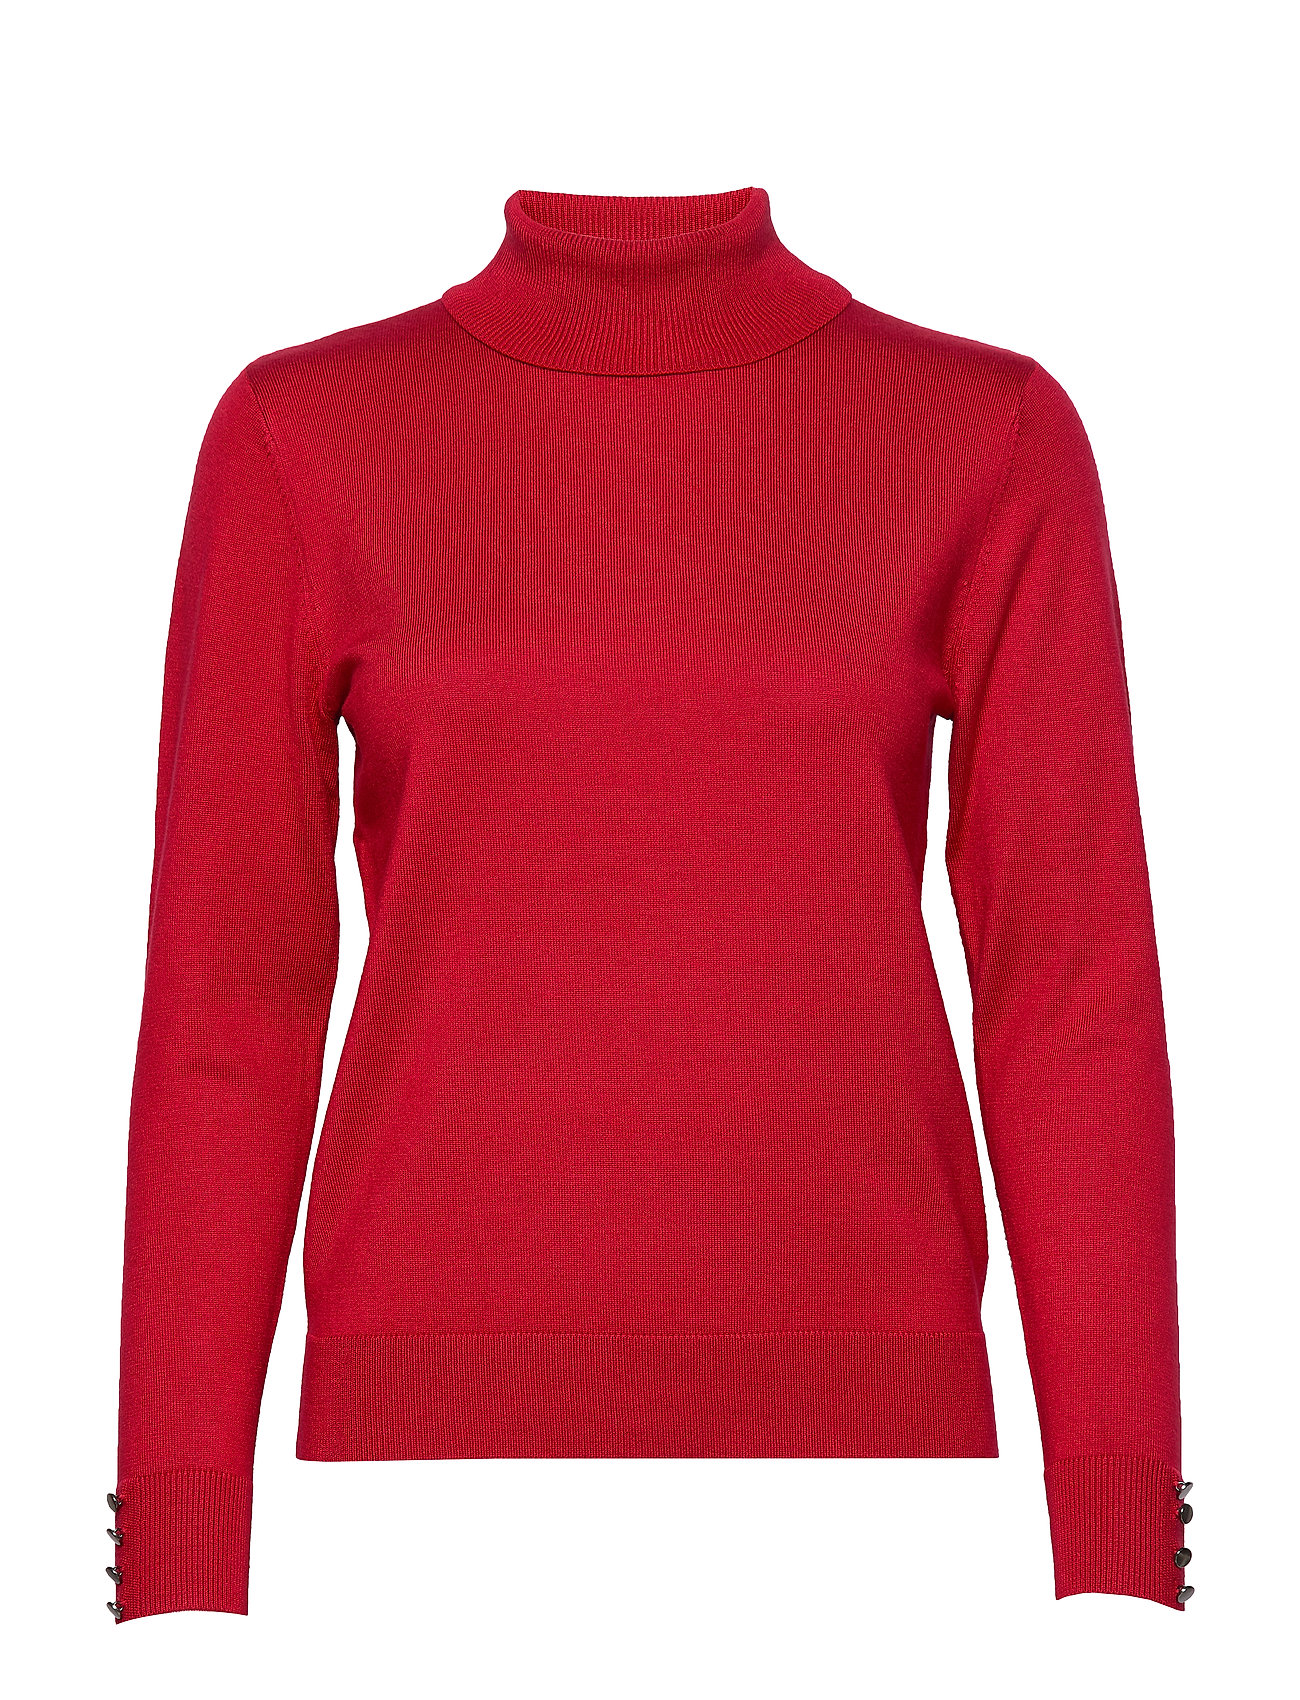 Brandtex Pullover-knit Light - RED